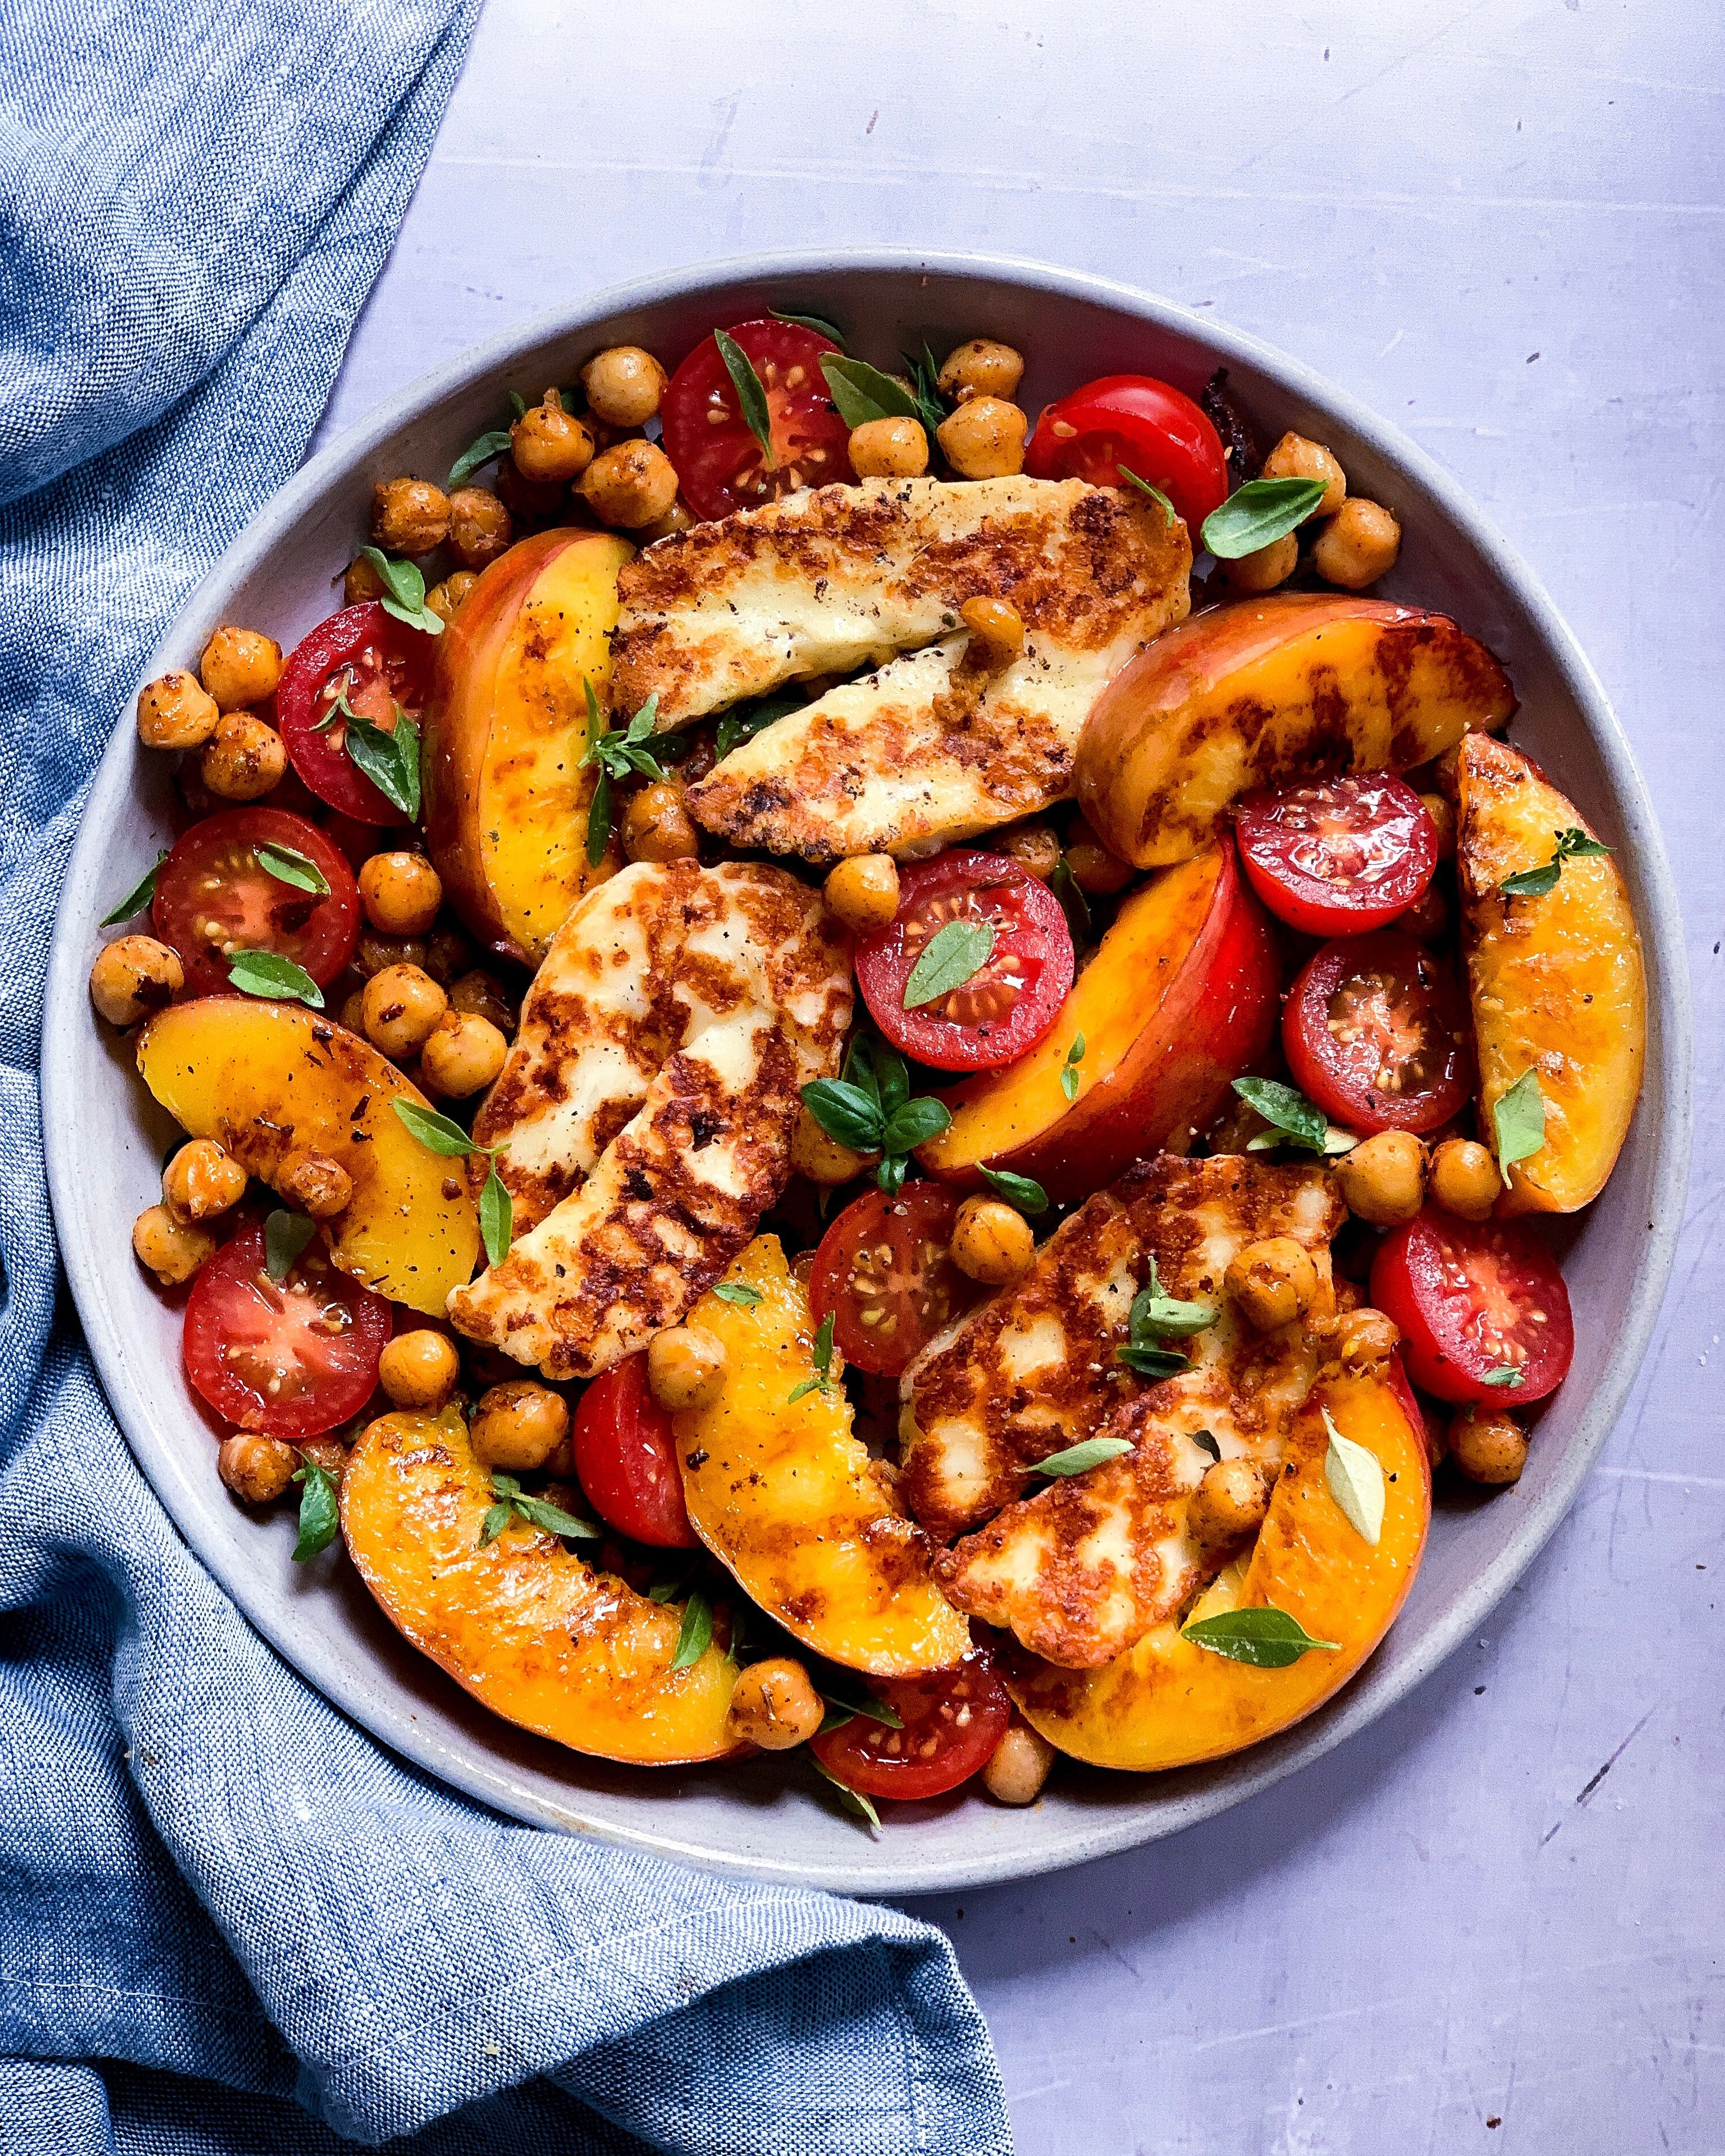 Nectarine Salad with Chickpeas and Grilled Halloumi